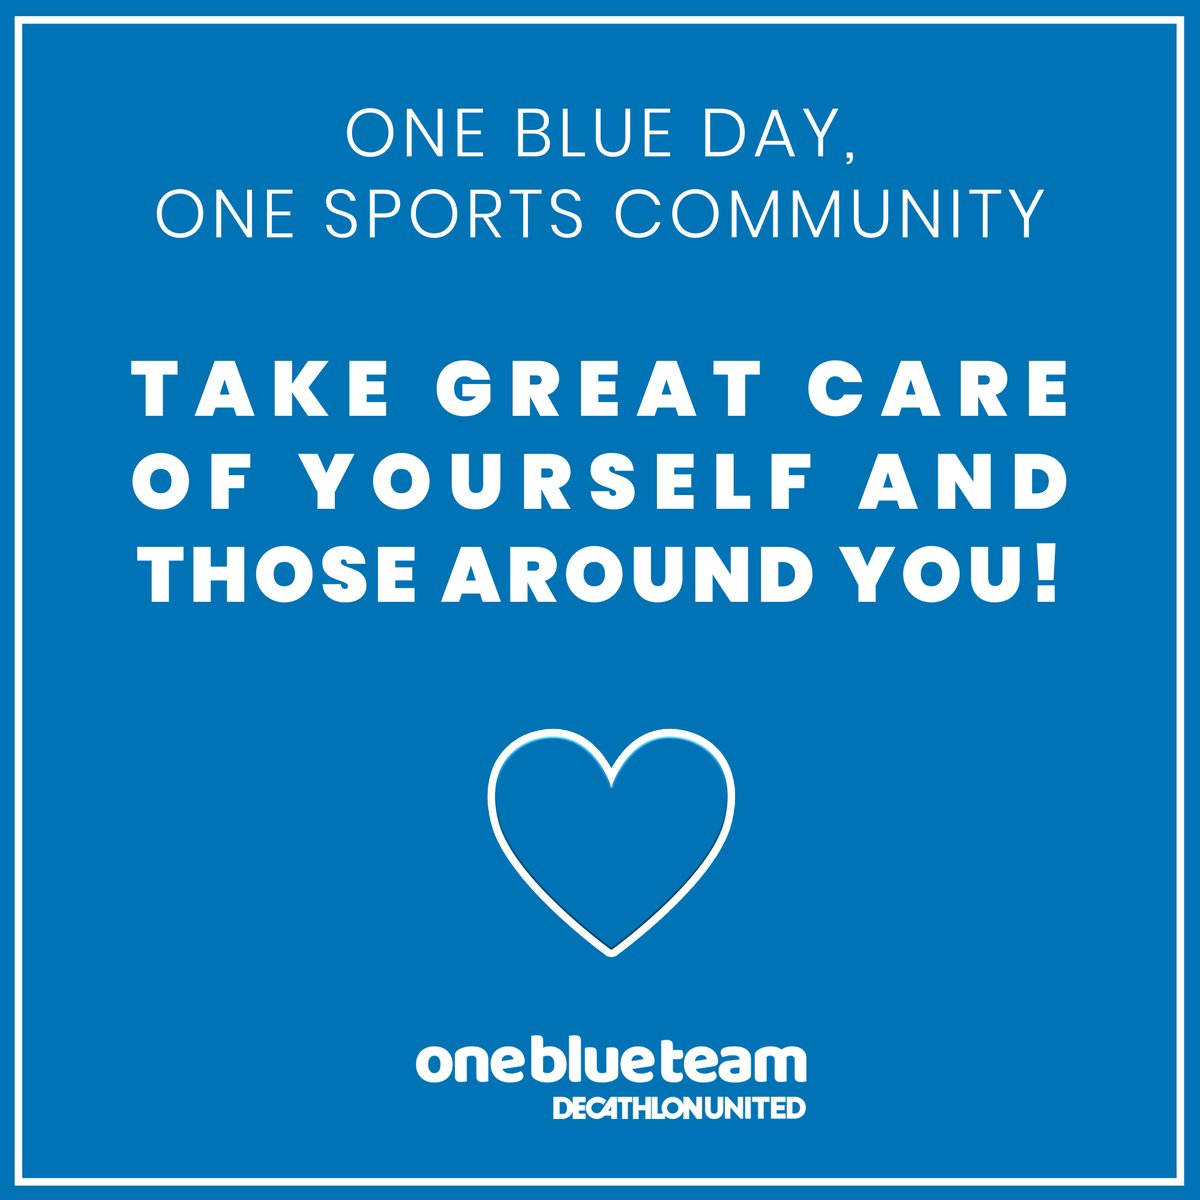 One Blue Day, One Sports Community Take great care of yourself and those around you! 💙  #IndoorSport #SportAtHome #KeepMoving https://t.co/4RDNw2oTfi https://t.co/FzZmNlGBm7